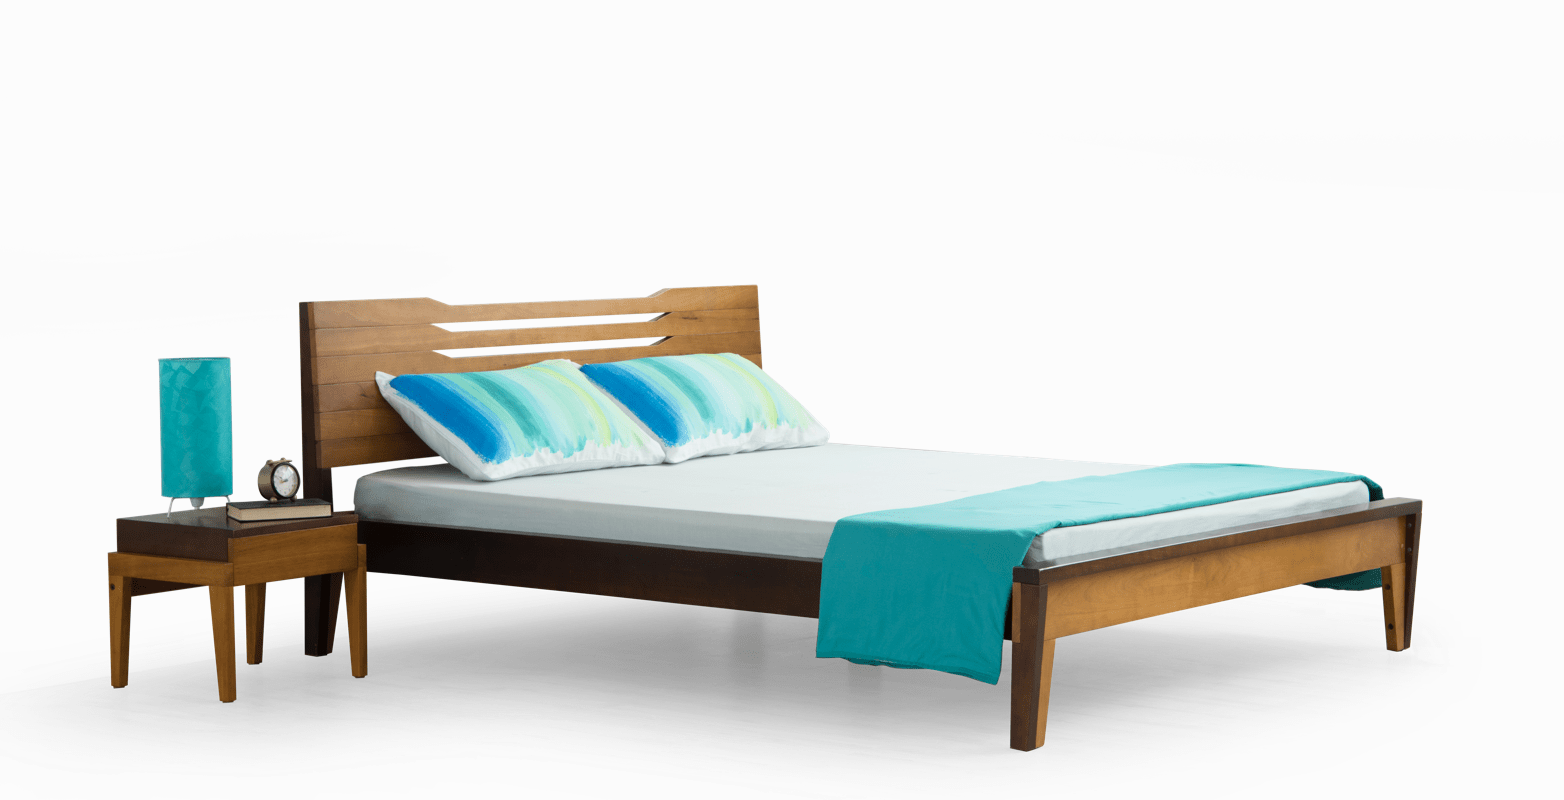 Rent Award Winning Furniture From Furlenco Free Delivery Within 3